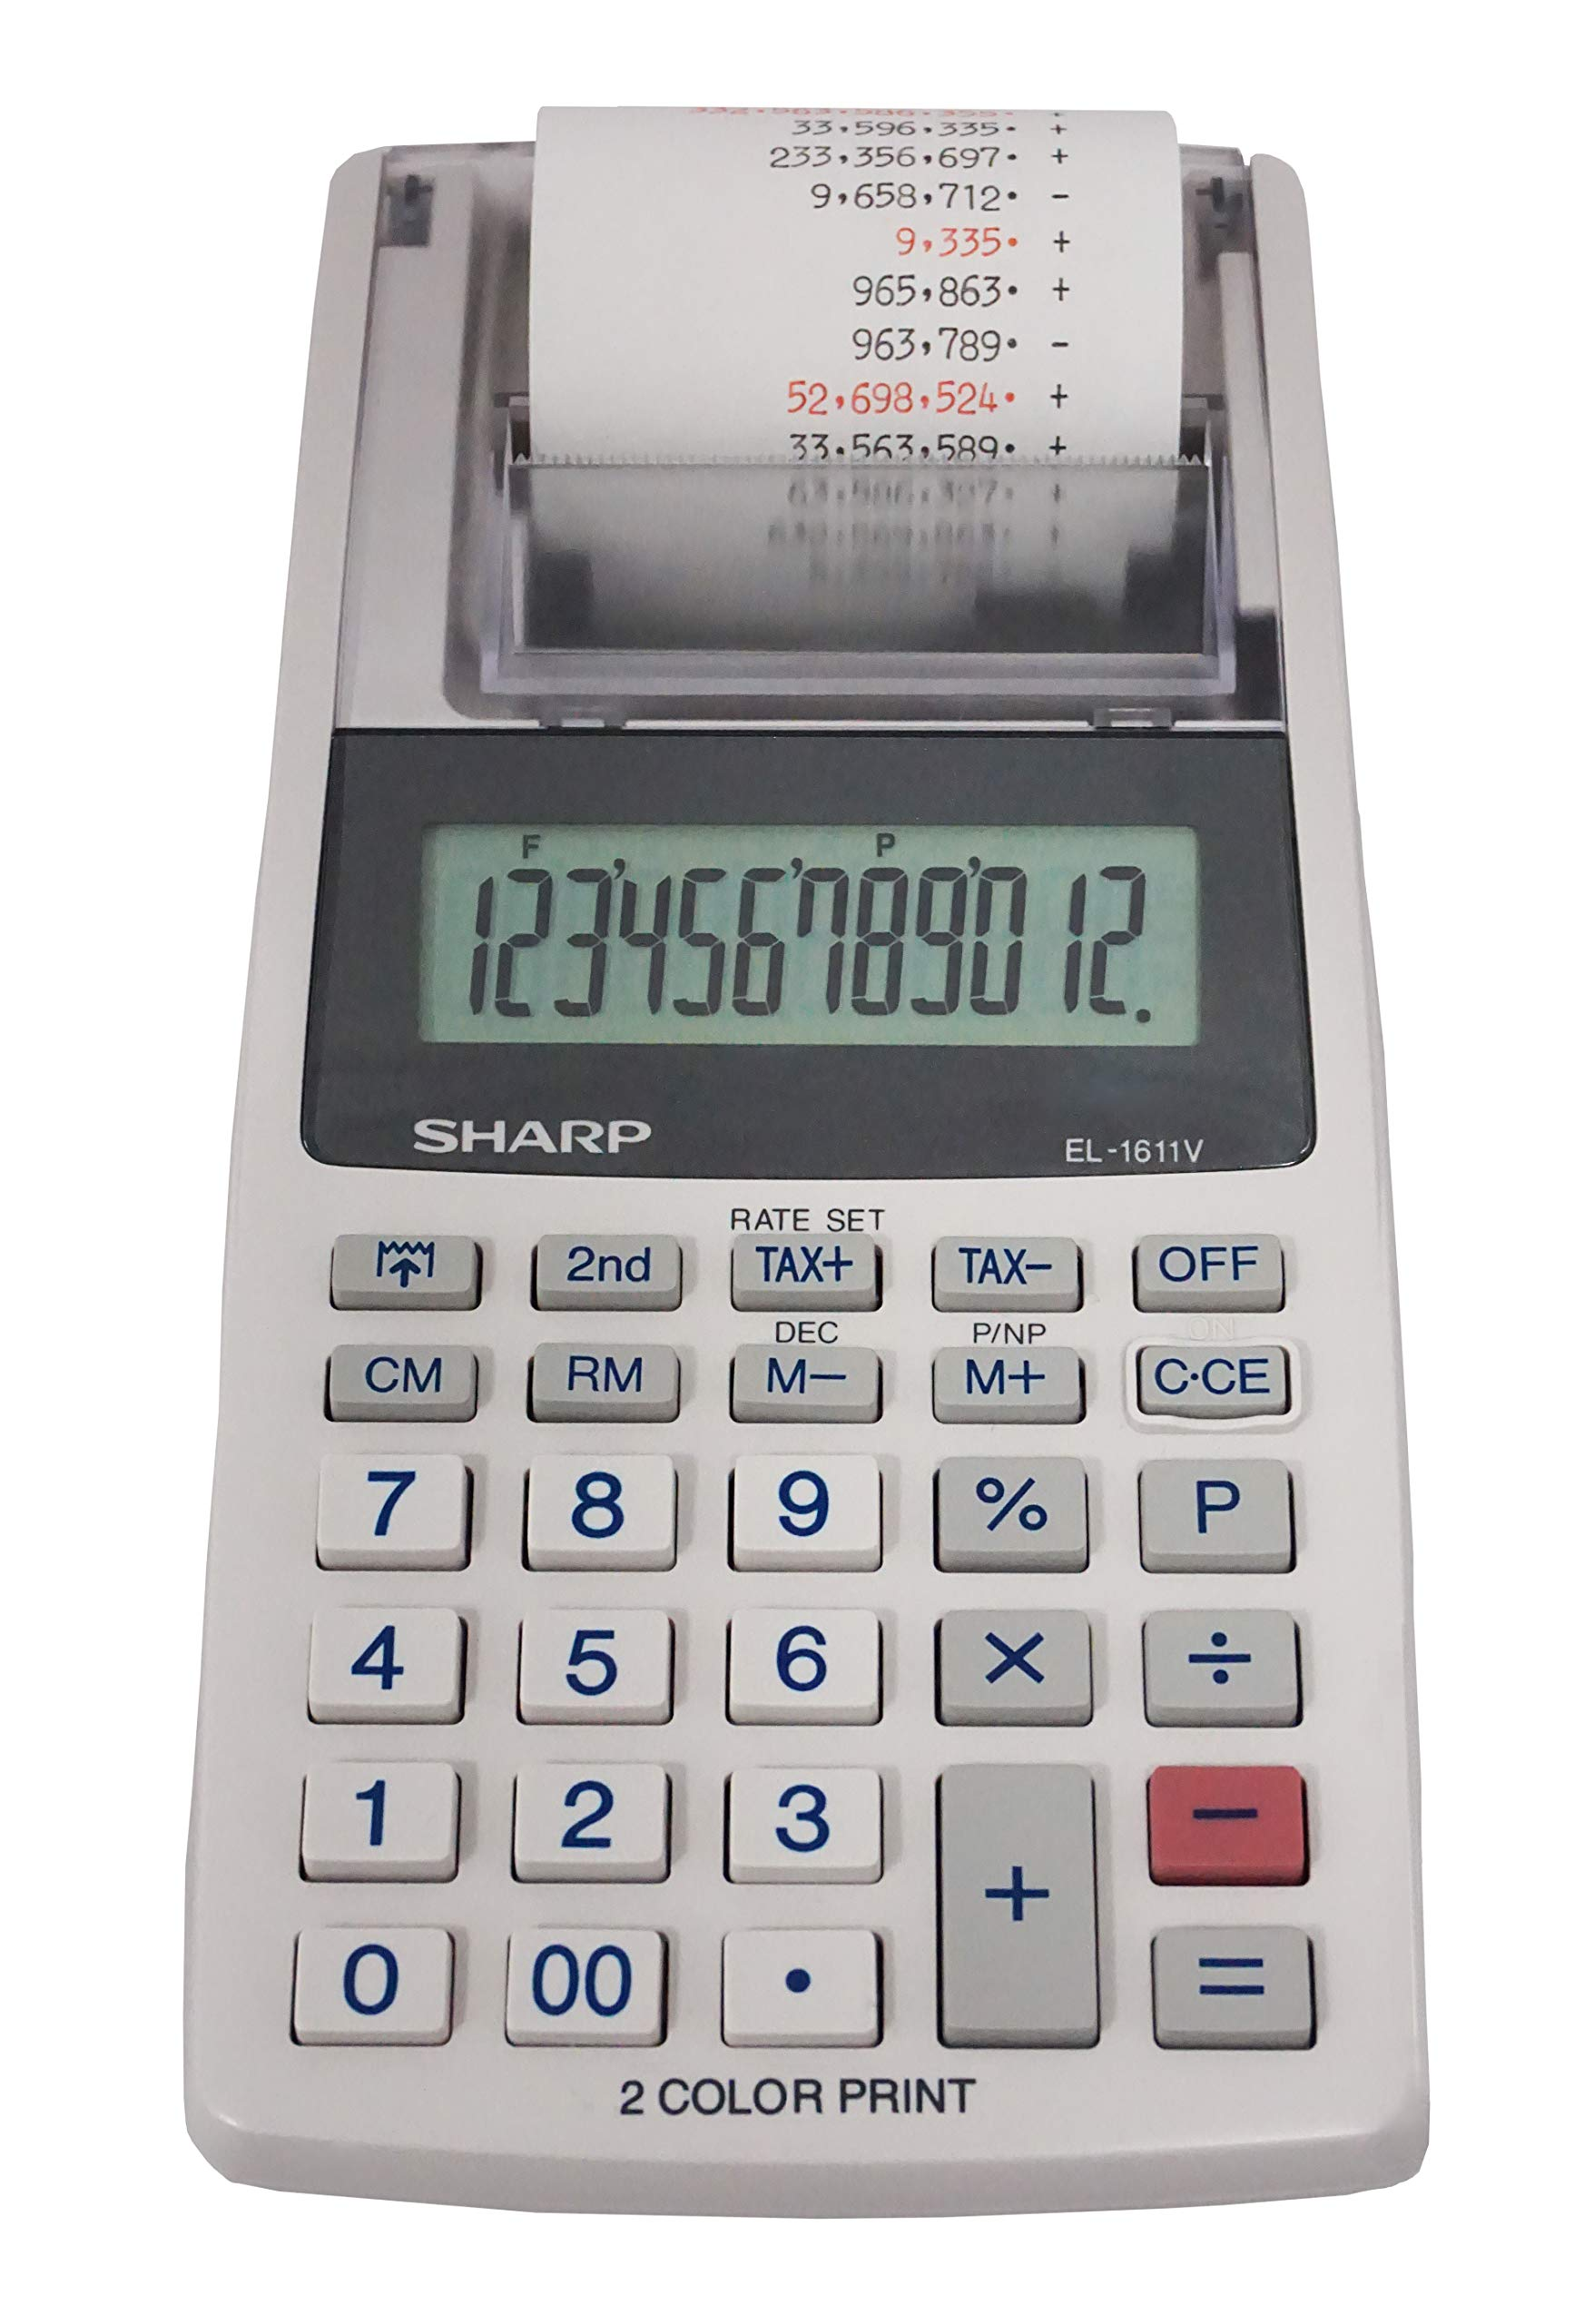 Sharp EL-1611V Handheld Portable Cordless 12 Digit Large LCD Display Two-Color Printing Calculator with Tax Functions by Sharp